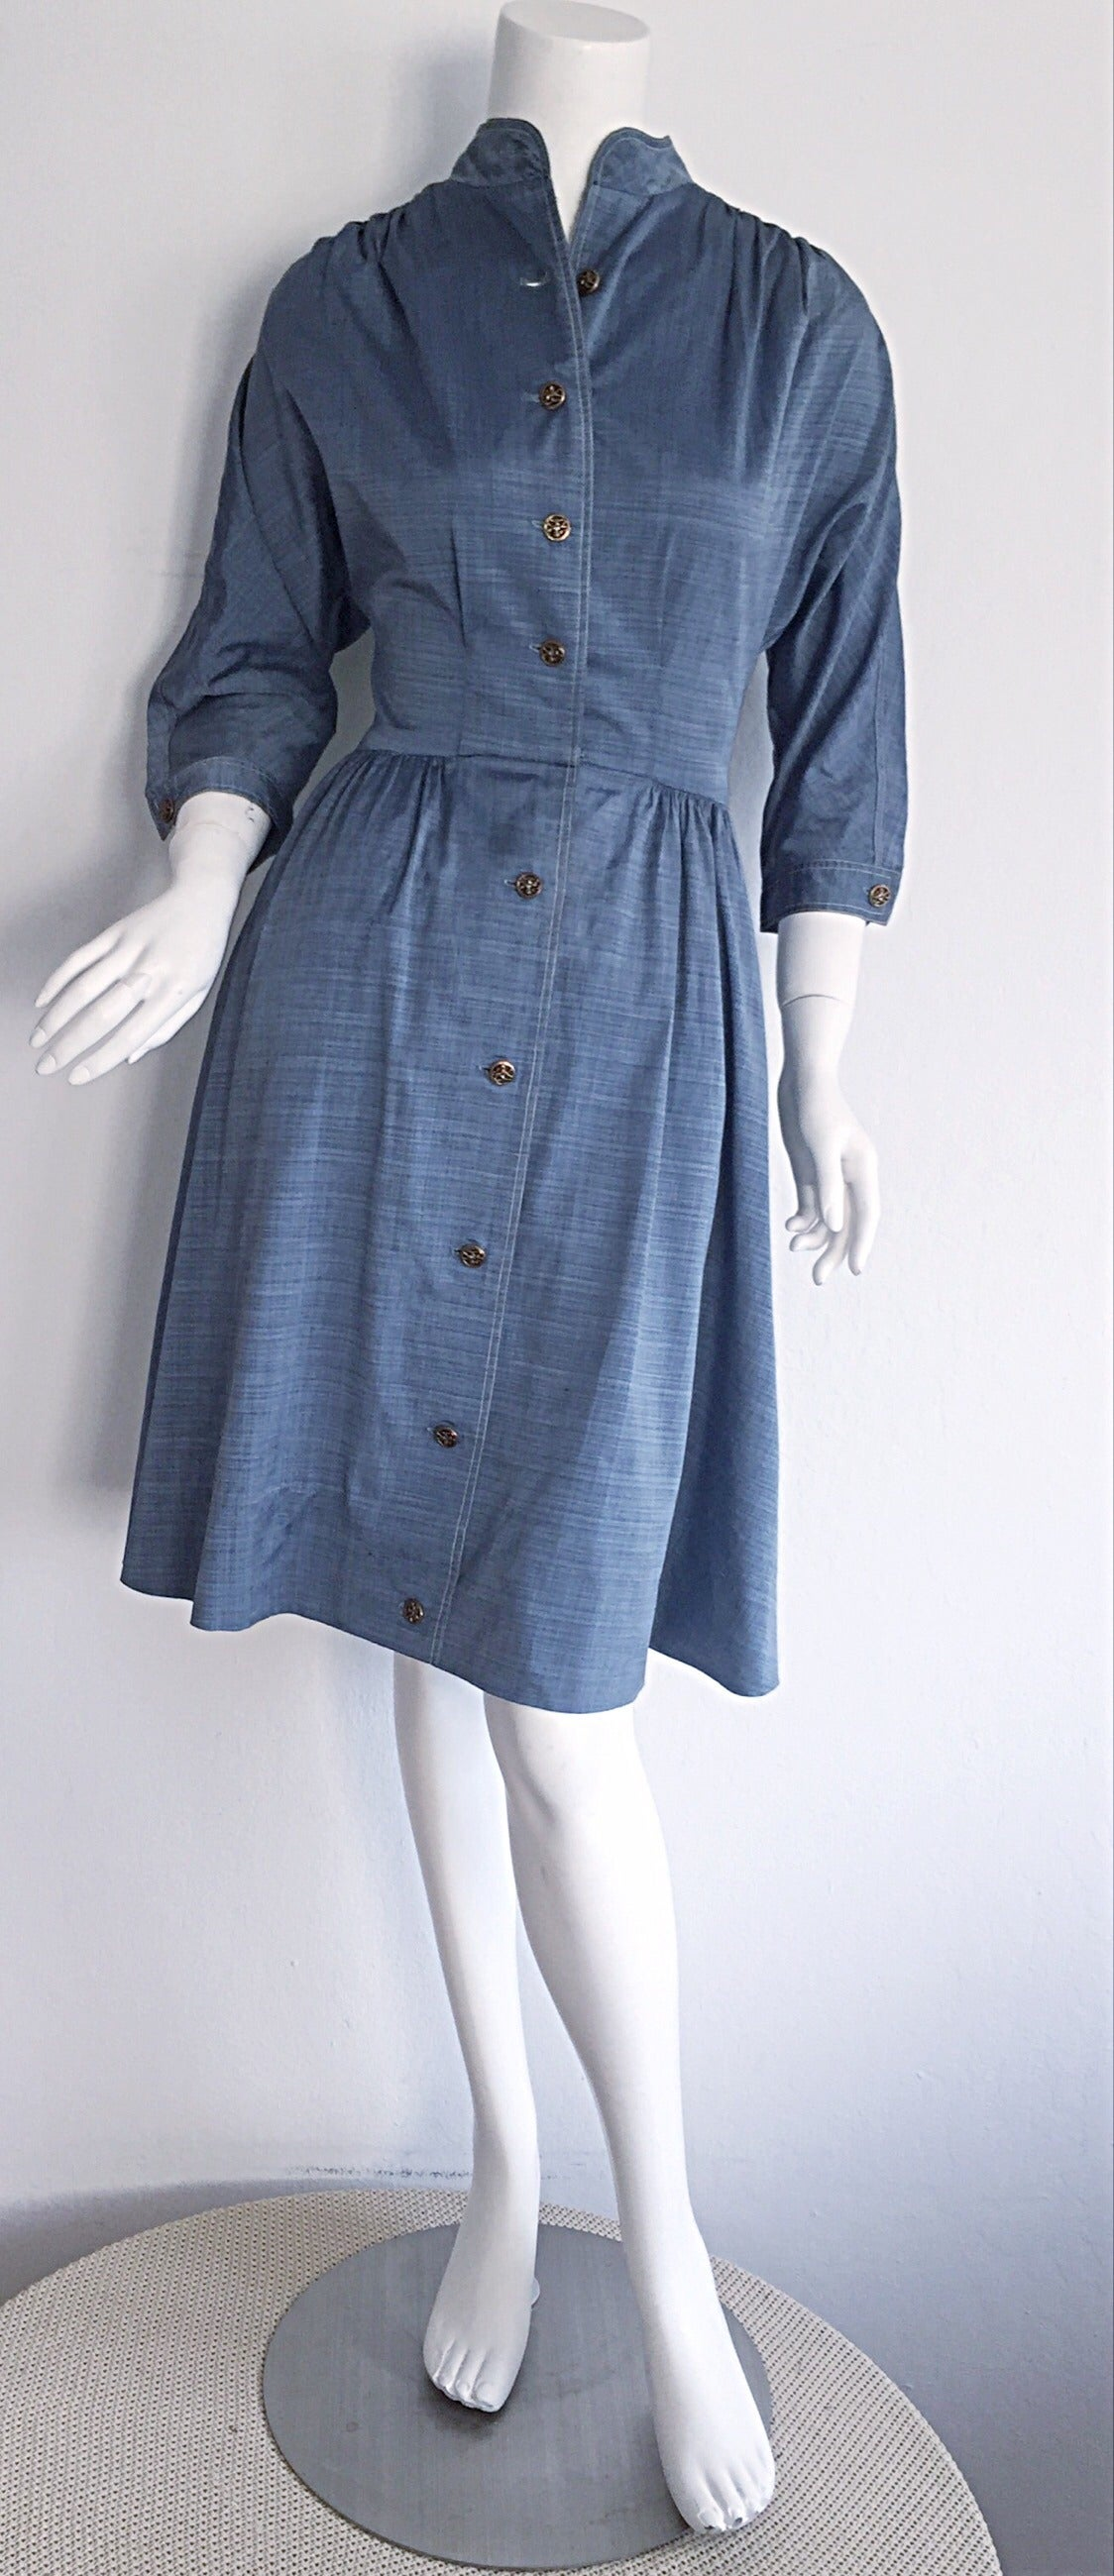 1940s Vintage B. Altman & Co. Denim Chambray Dress w/ Horse Buttons 7